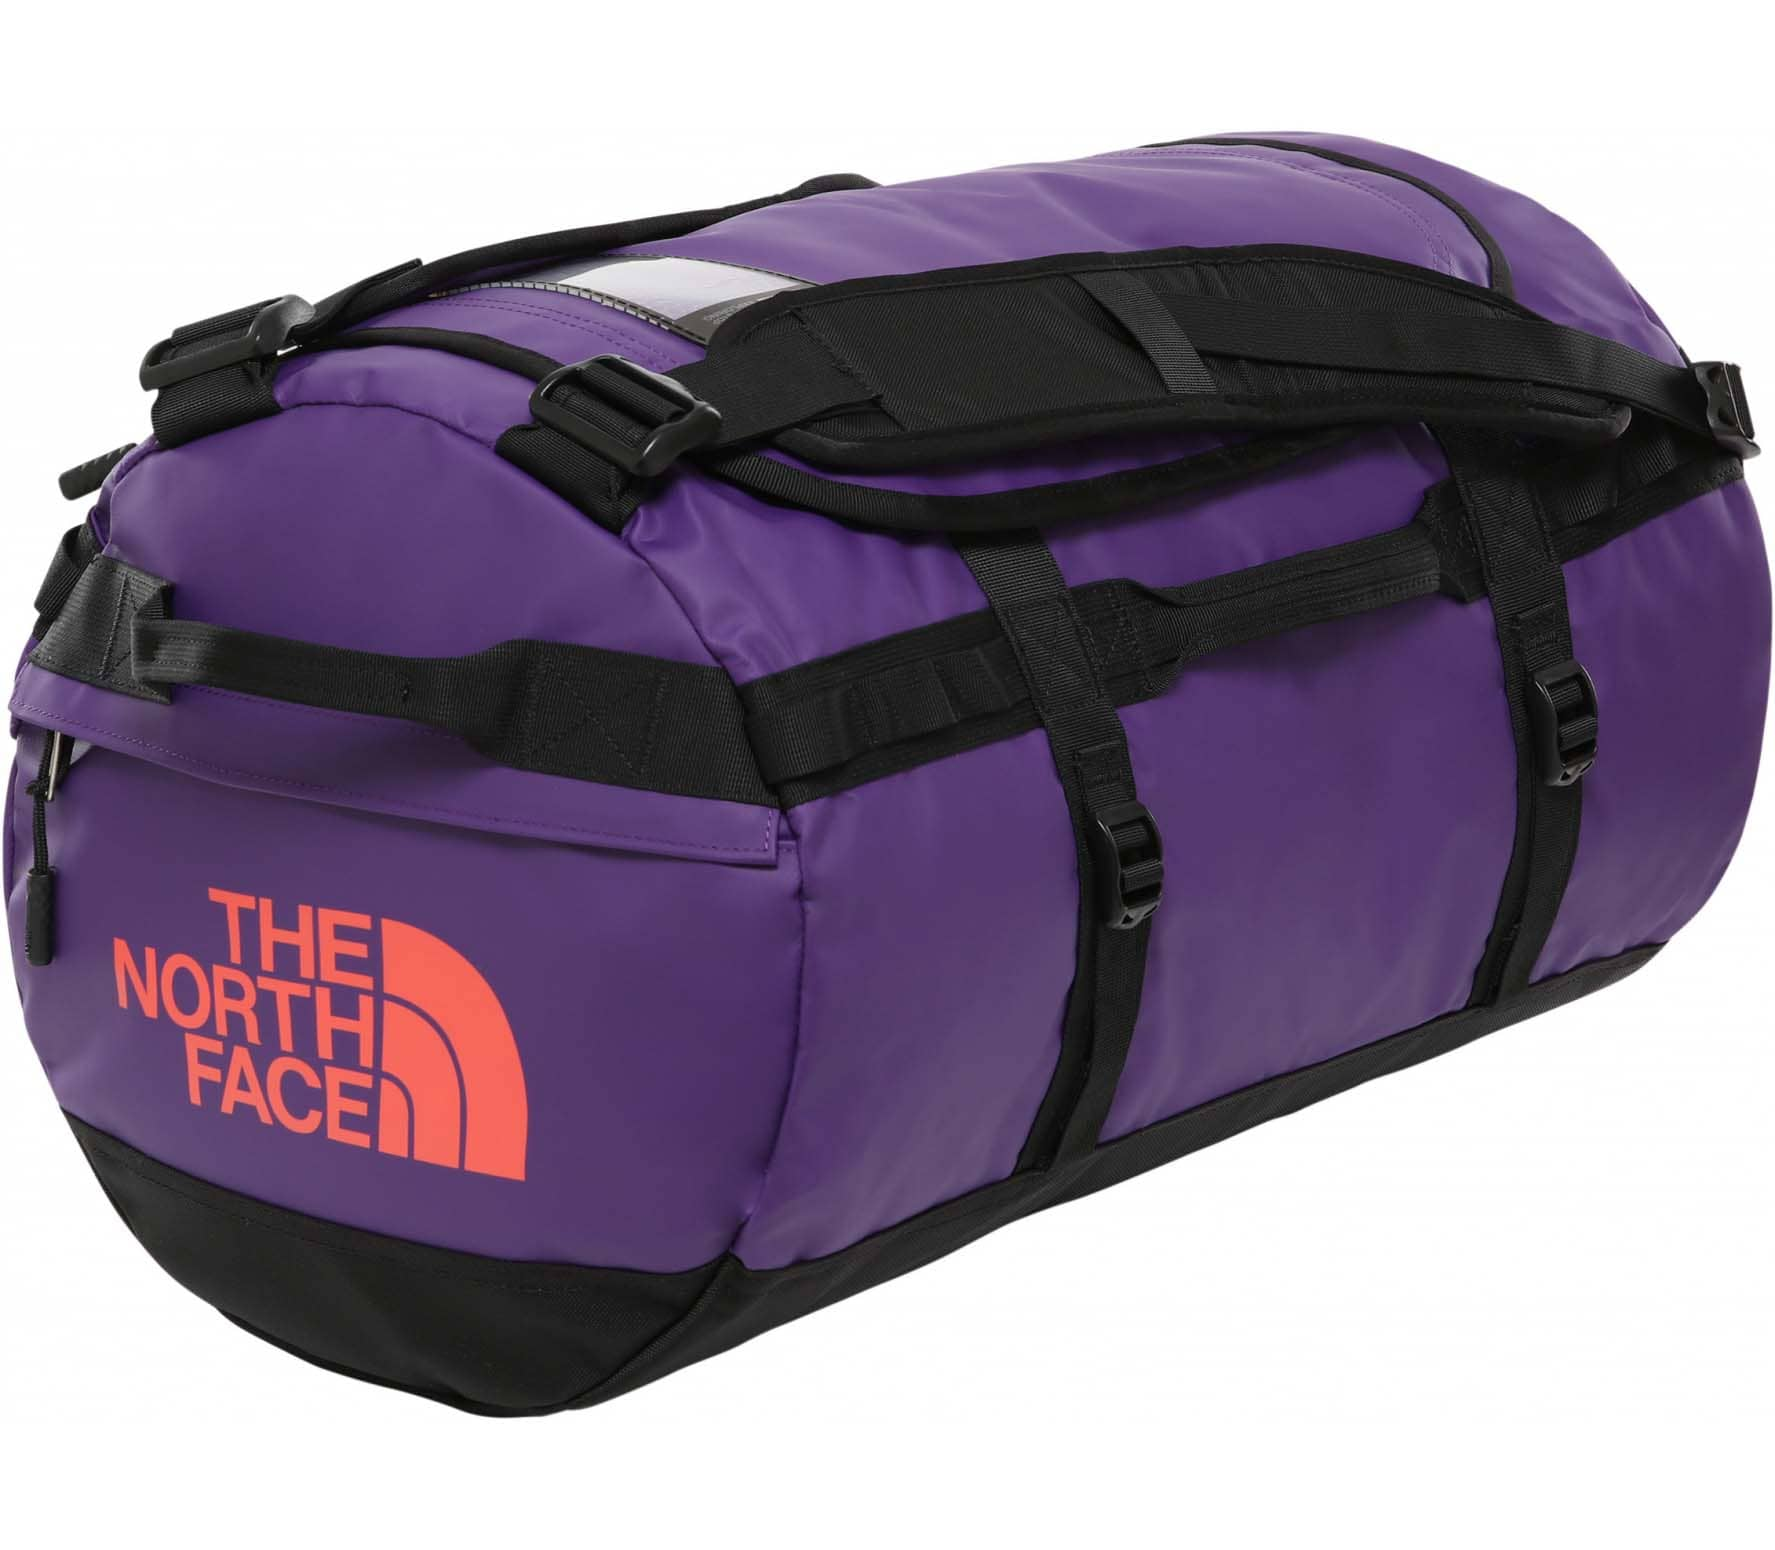 Unisex Bolsa Base Face Camp Morado North Duffel The ywmnv8ON0